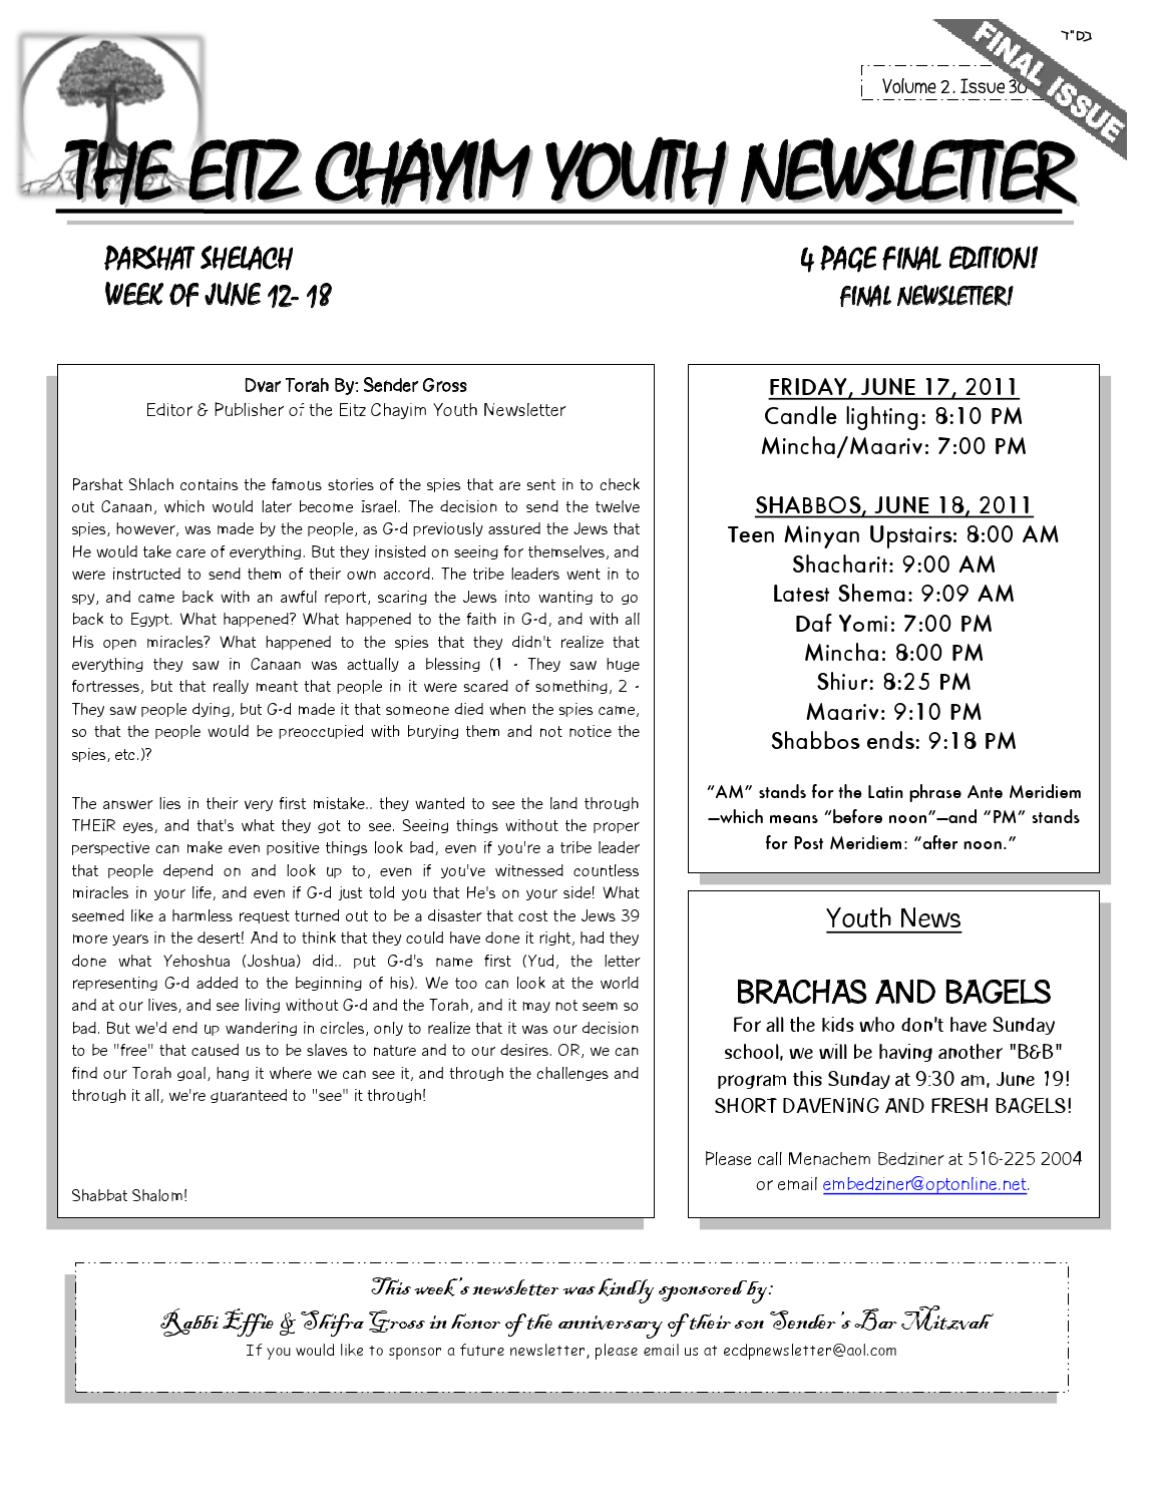 Eitz Chayim Youth Newsletter Final Issue PG1 by sender gross